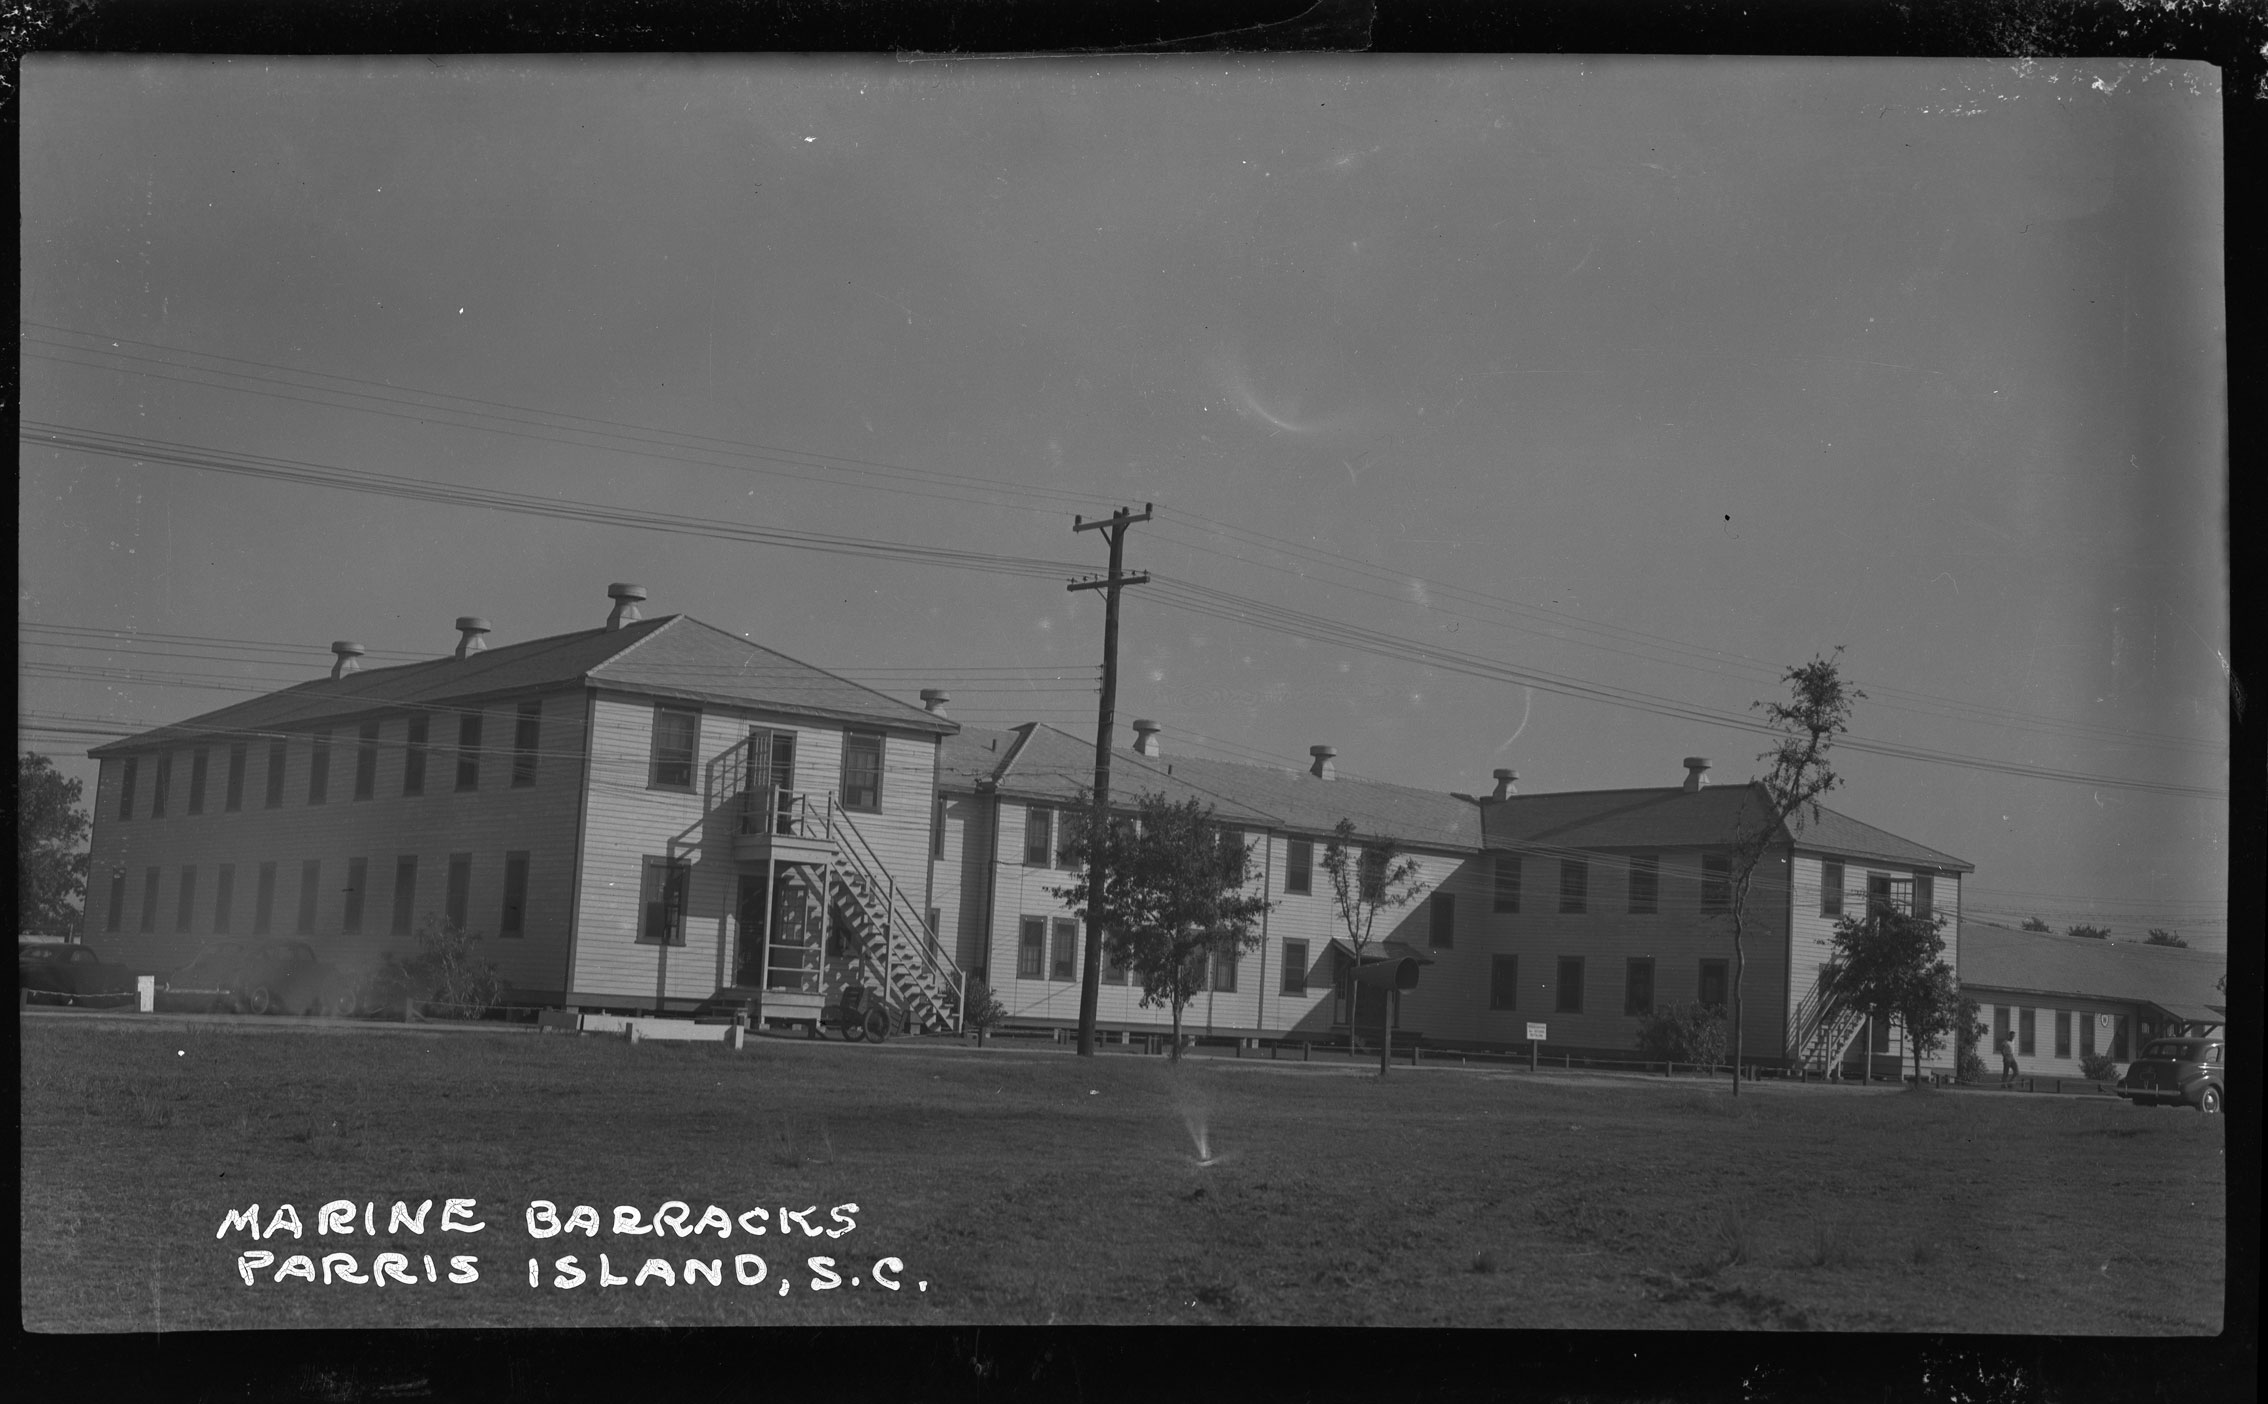 Marine Barracks Parris Island, S.C. back view